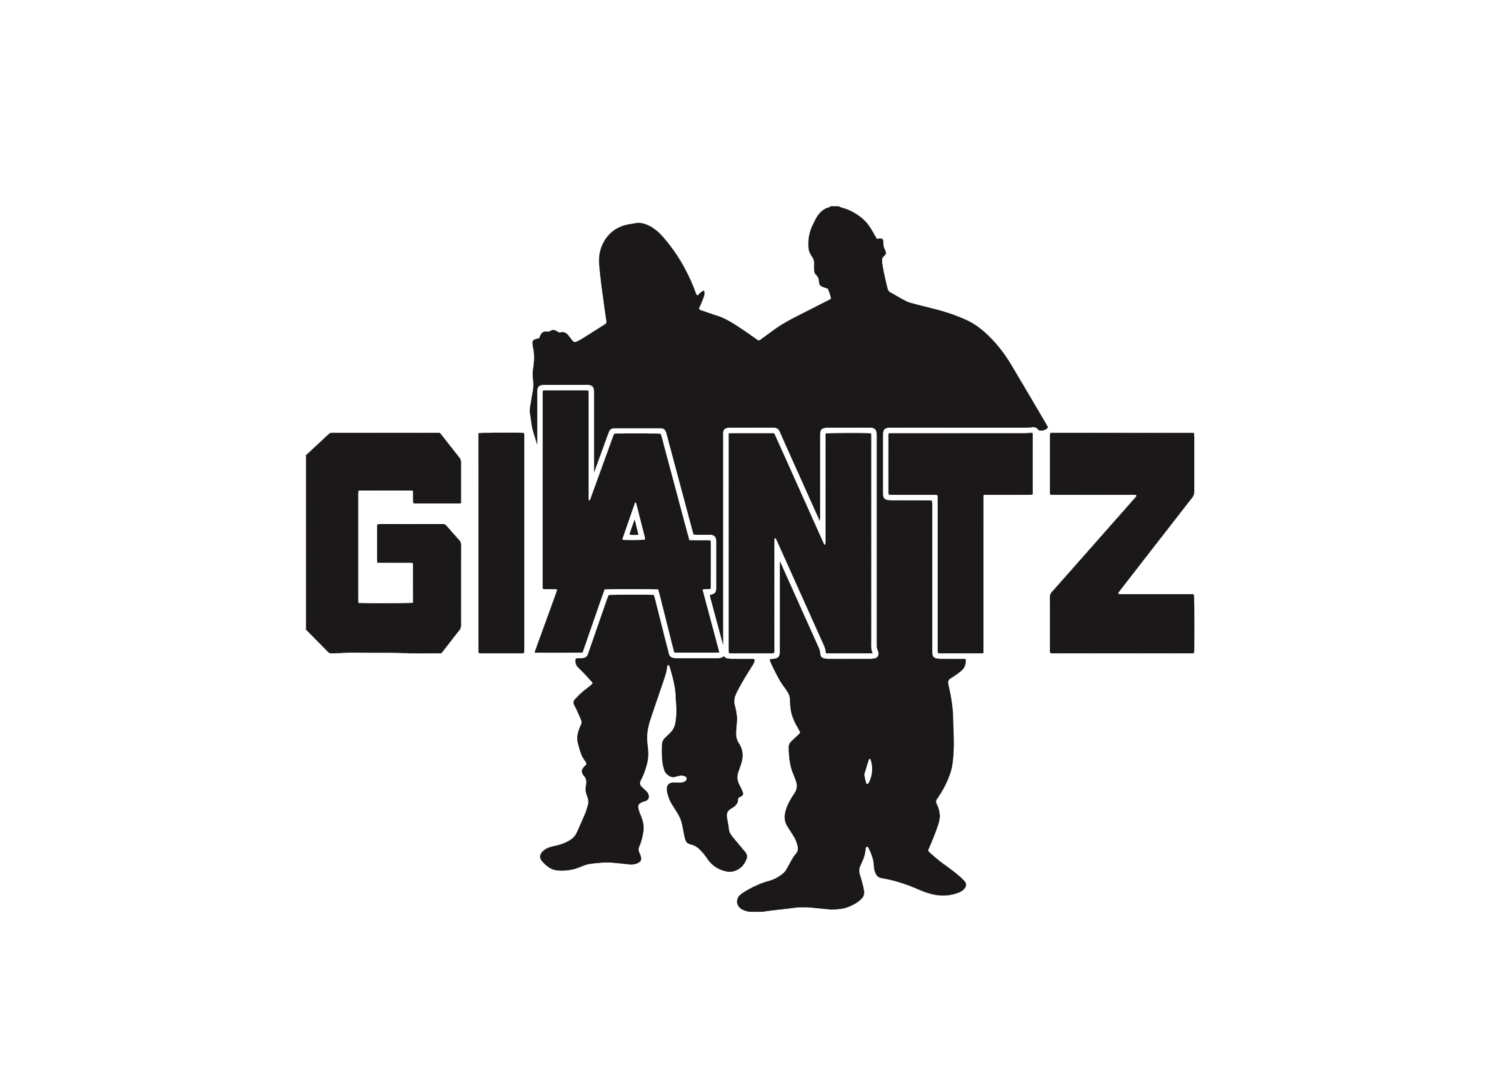 YOUNG GIANTZ